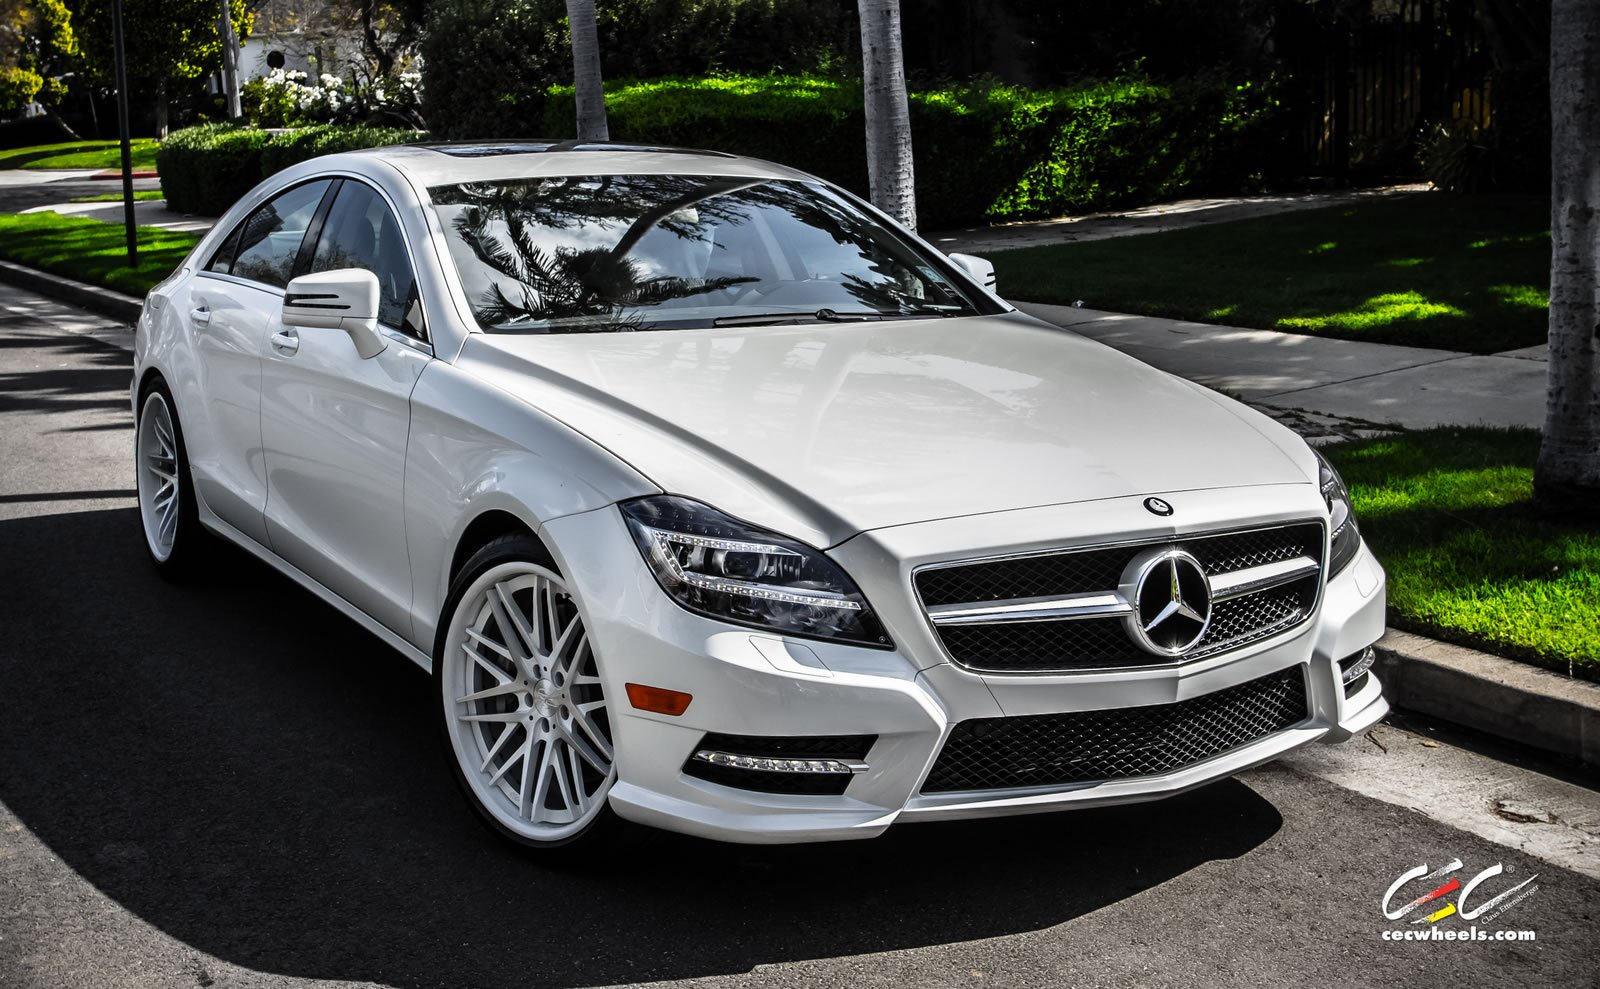 Mercedes benz cls 550 2015 bing images for Search for mercedes benz